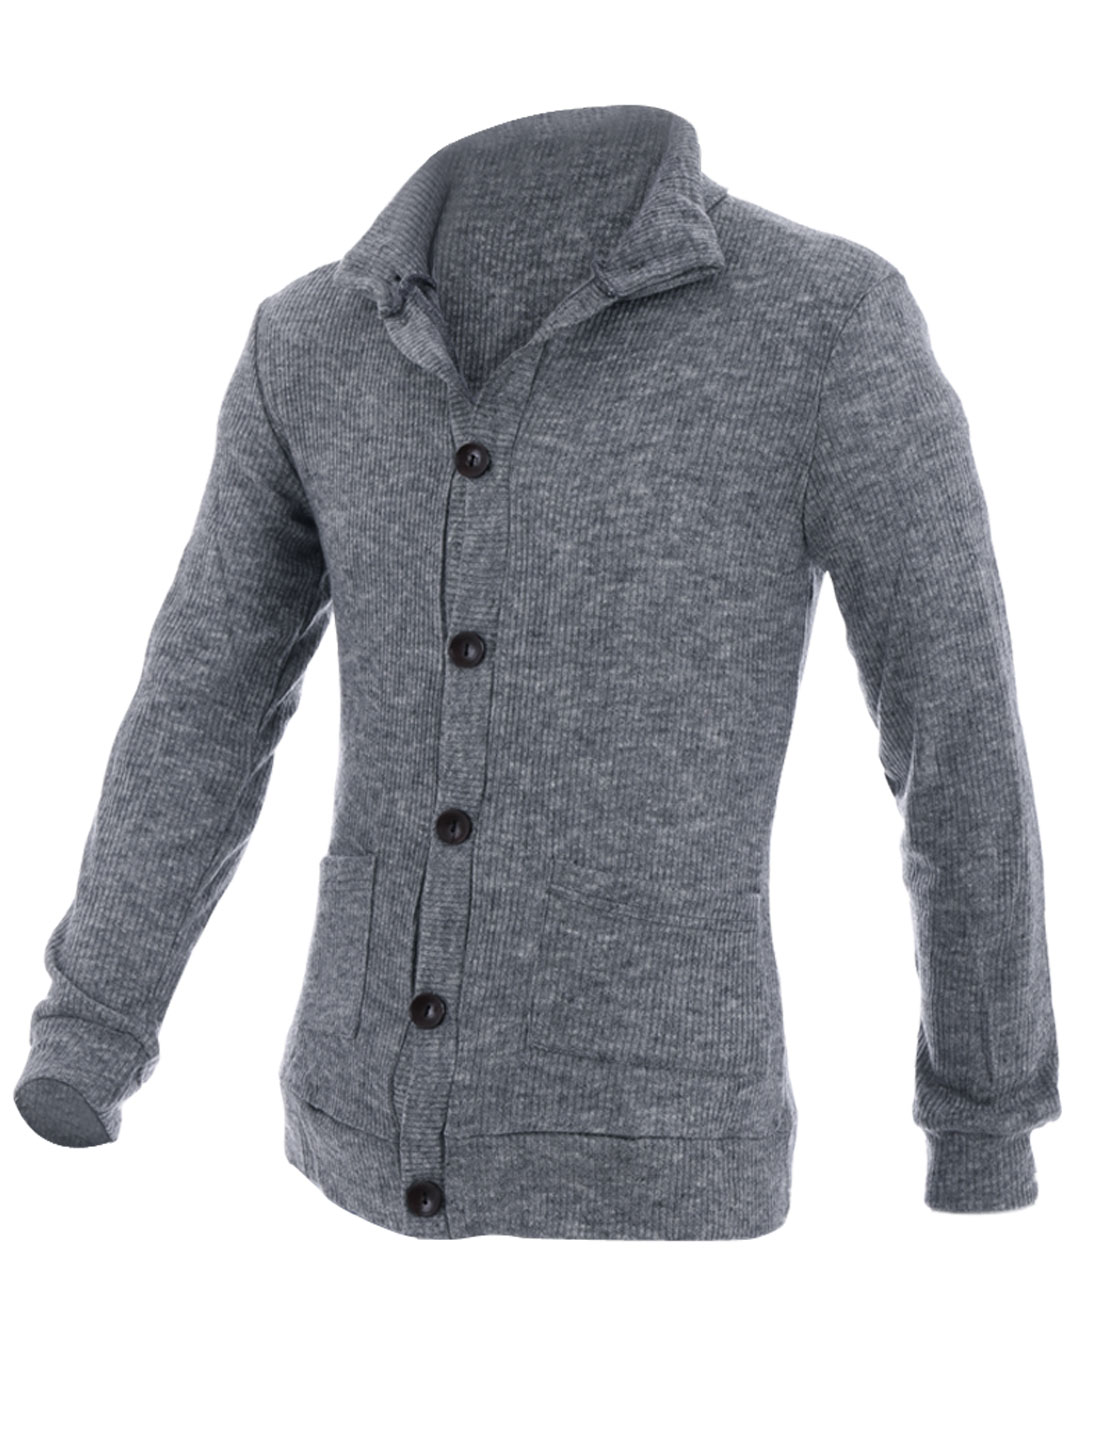 Mens Stand Collar Single-Breasted Front Heather Gray Cardigan Coat M